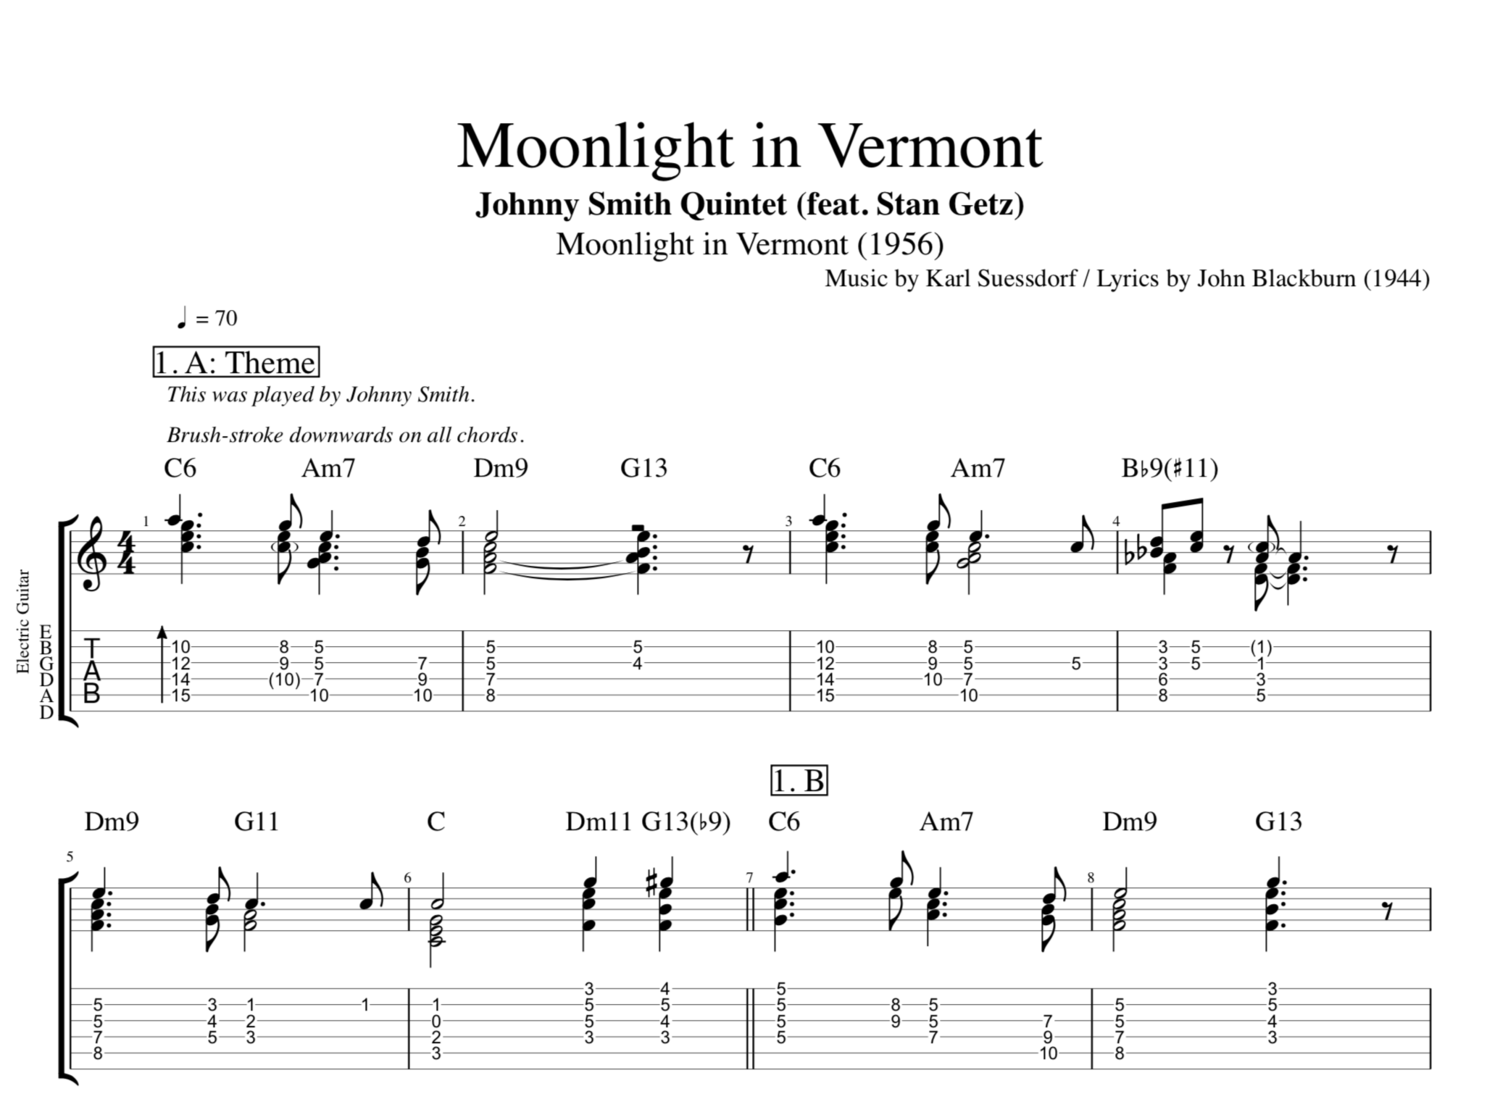 7 et 8 CORDES, guitares-et-basses, impro/composition, investigations Moonlight+in+Vermont+G+Johnny+Smith+Stan+Getz+guitar+tab+tabs+chords+double+bass+jazz+saxophone+tenor+transcription+chords+sheet+music